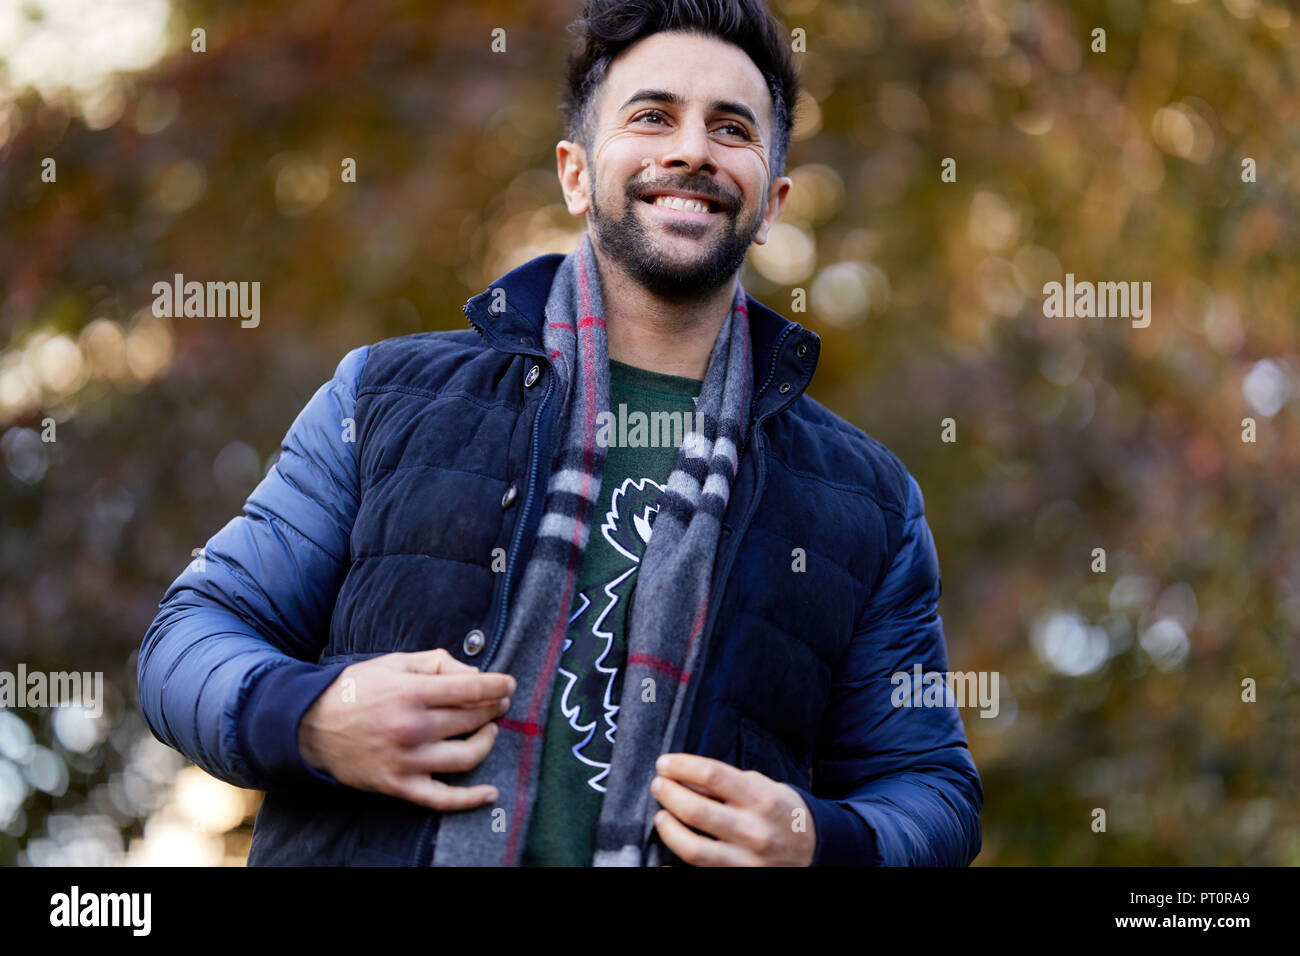 Man Walking outdoors Photo Stock